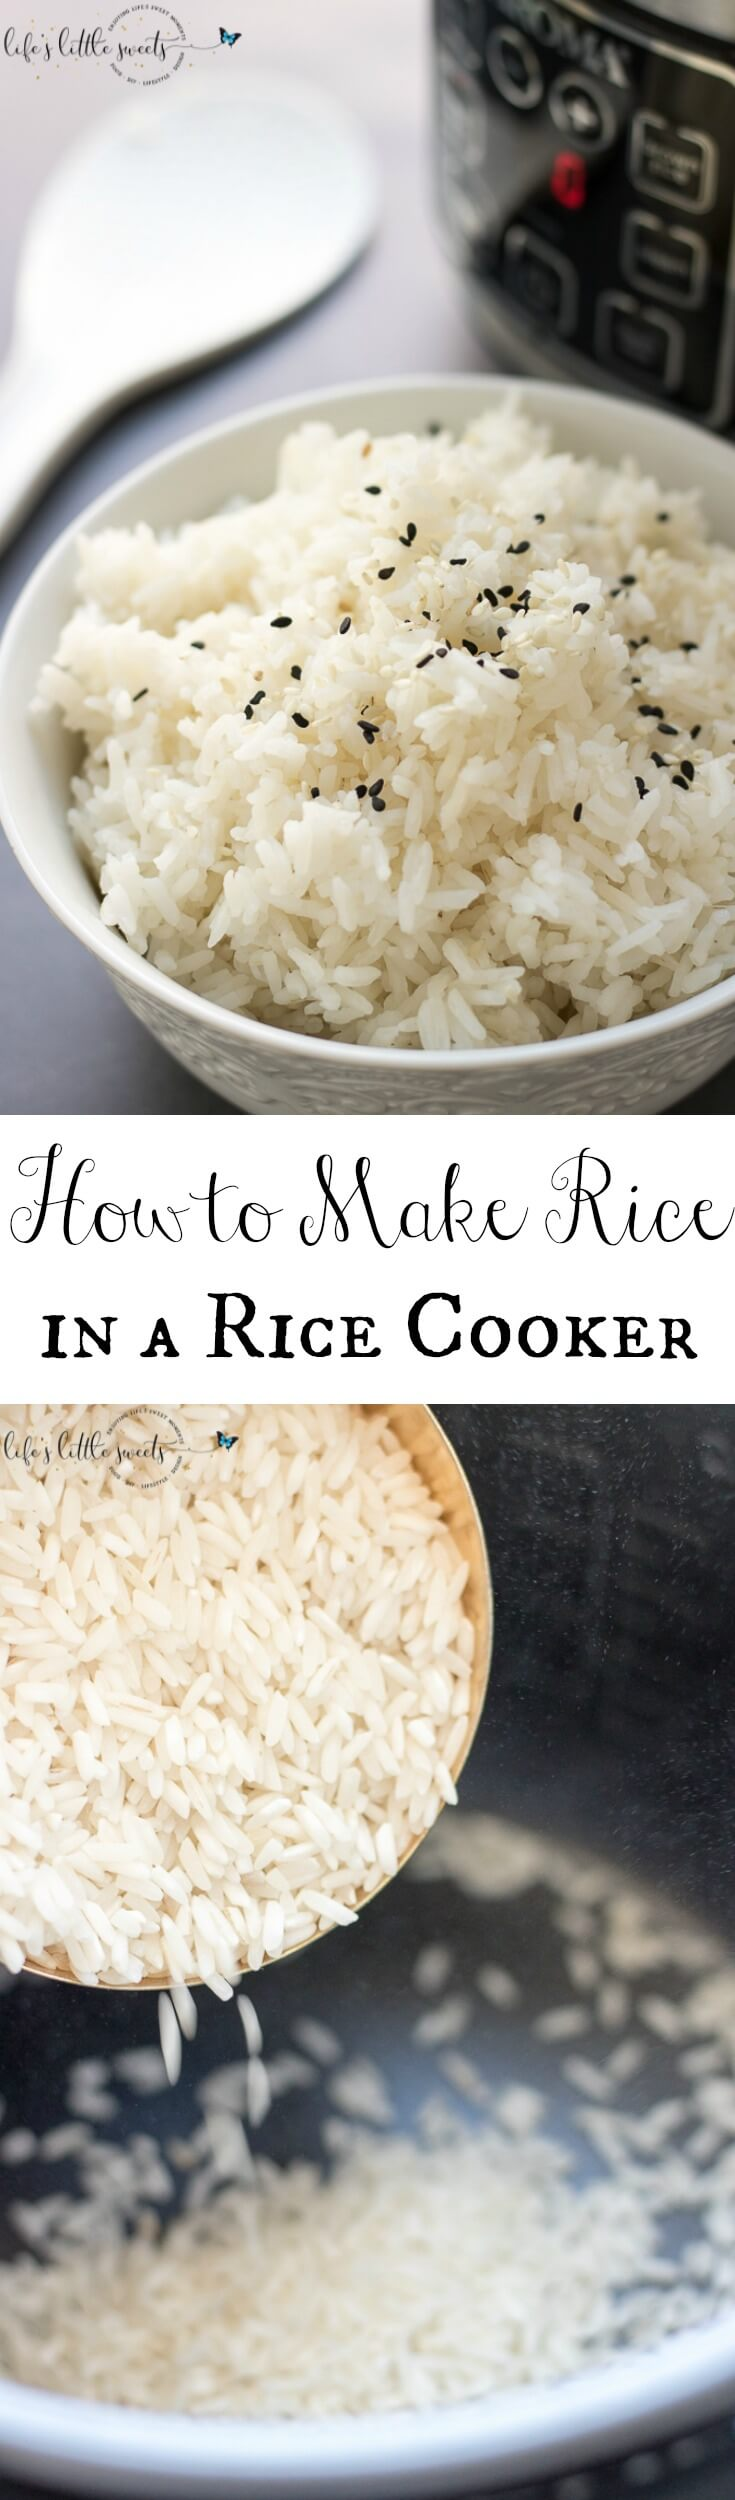 Do you know How to Make Rice in a Rice Cooker? Making rice this way is easy, less messy and frees up the stove top for cooking other food while preparing your meal. I wouldn't have it any other way! #rice #grain #ricecooker #appliance #whiterice #sidedish #side #ad